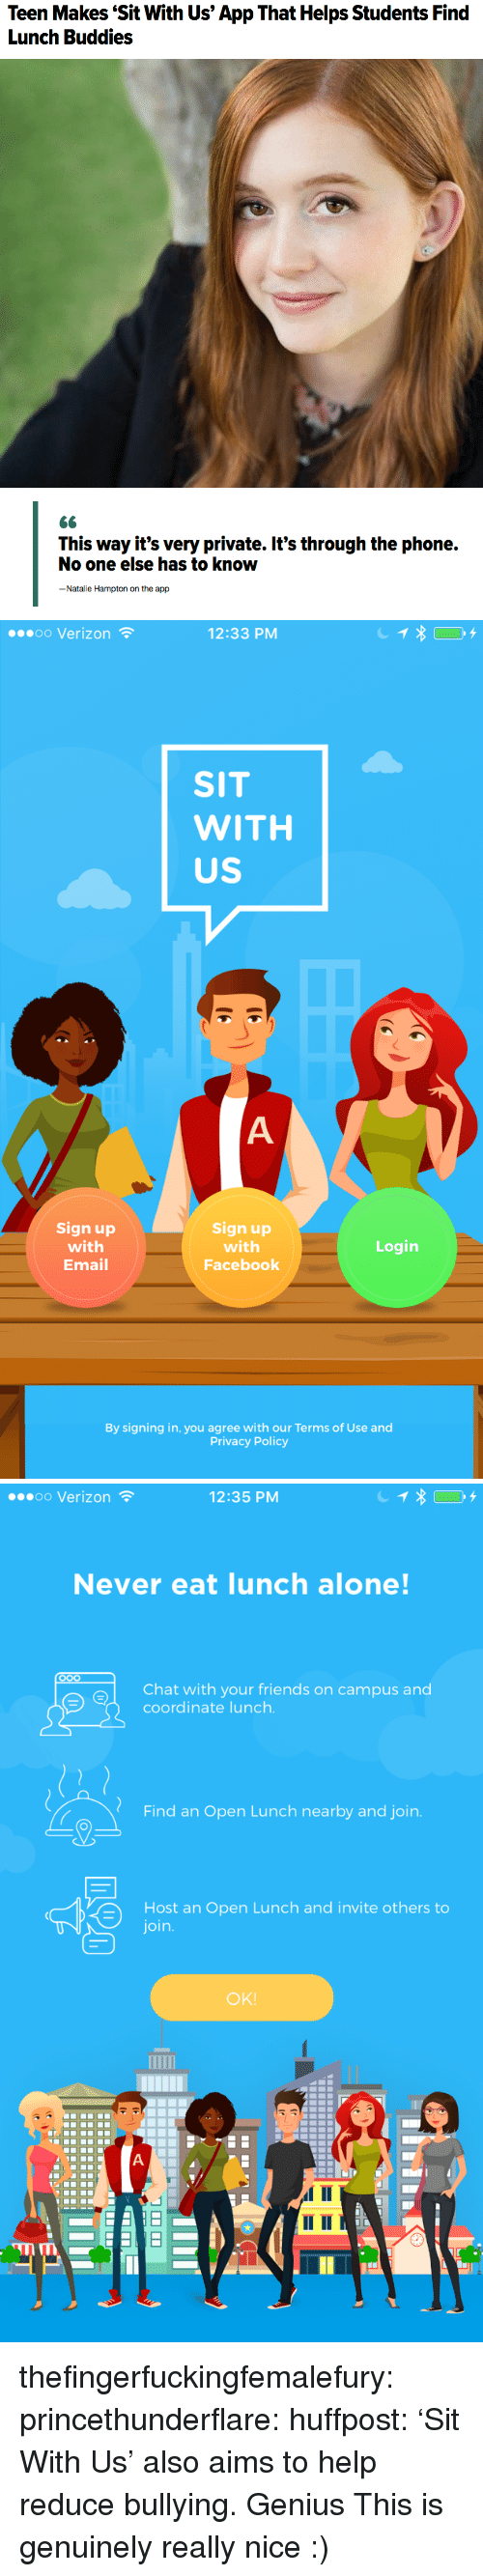 Being Alone, Facebook, and Friends: Teen Makes Sit With Us' App That Helps Students Find  Lunch Buddies   No one else has to know  - Natalie Hampton on the app   oo Verizon  12:33 PM  SIT  WITH  US  Sign up  with  Email  Sign up  with  Facebook  Login  By signing in, you agree with our Terms of Use and  Privacy Policy   00 Verizon  12:35 PM  Never eat lunch alone!  Chat with your friends on campus and  coordinate lunch  Find an Open Lunch nearby and join  Host an Open Lunch and invite others to  join  OK!  mn thefingerfuckingfemalefury:  princethunderflare: huffpost: 'Sit With Us' also aims to help reduce bullying. Genius  This is genuinely really nice :)